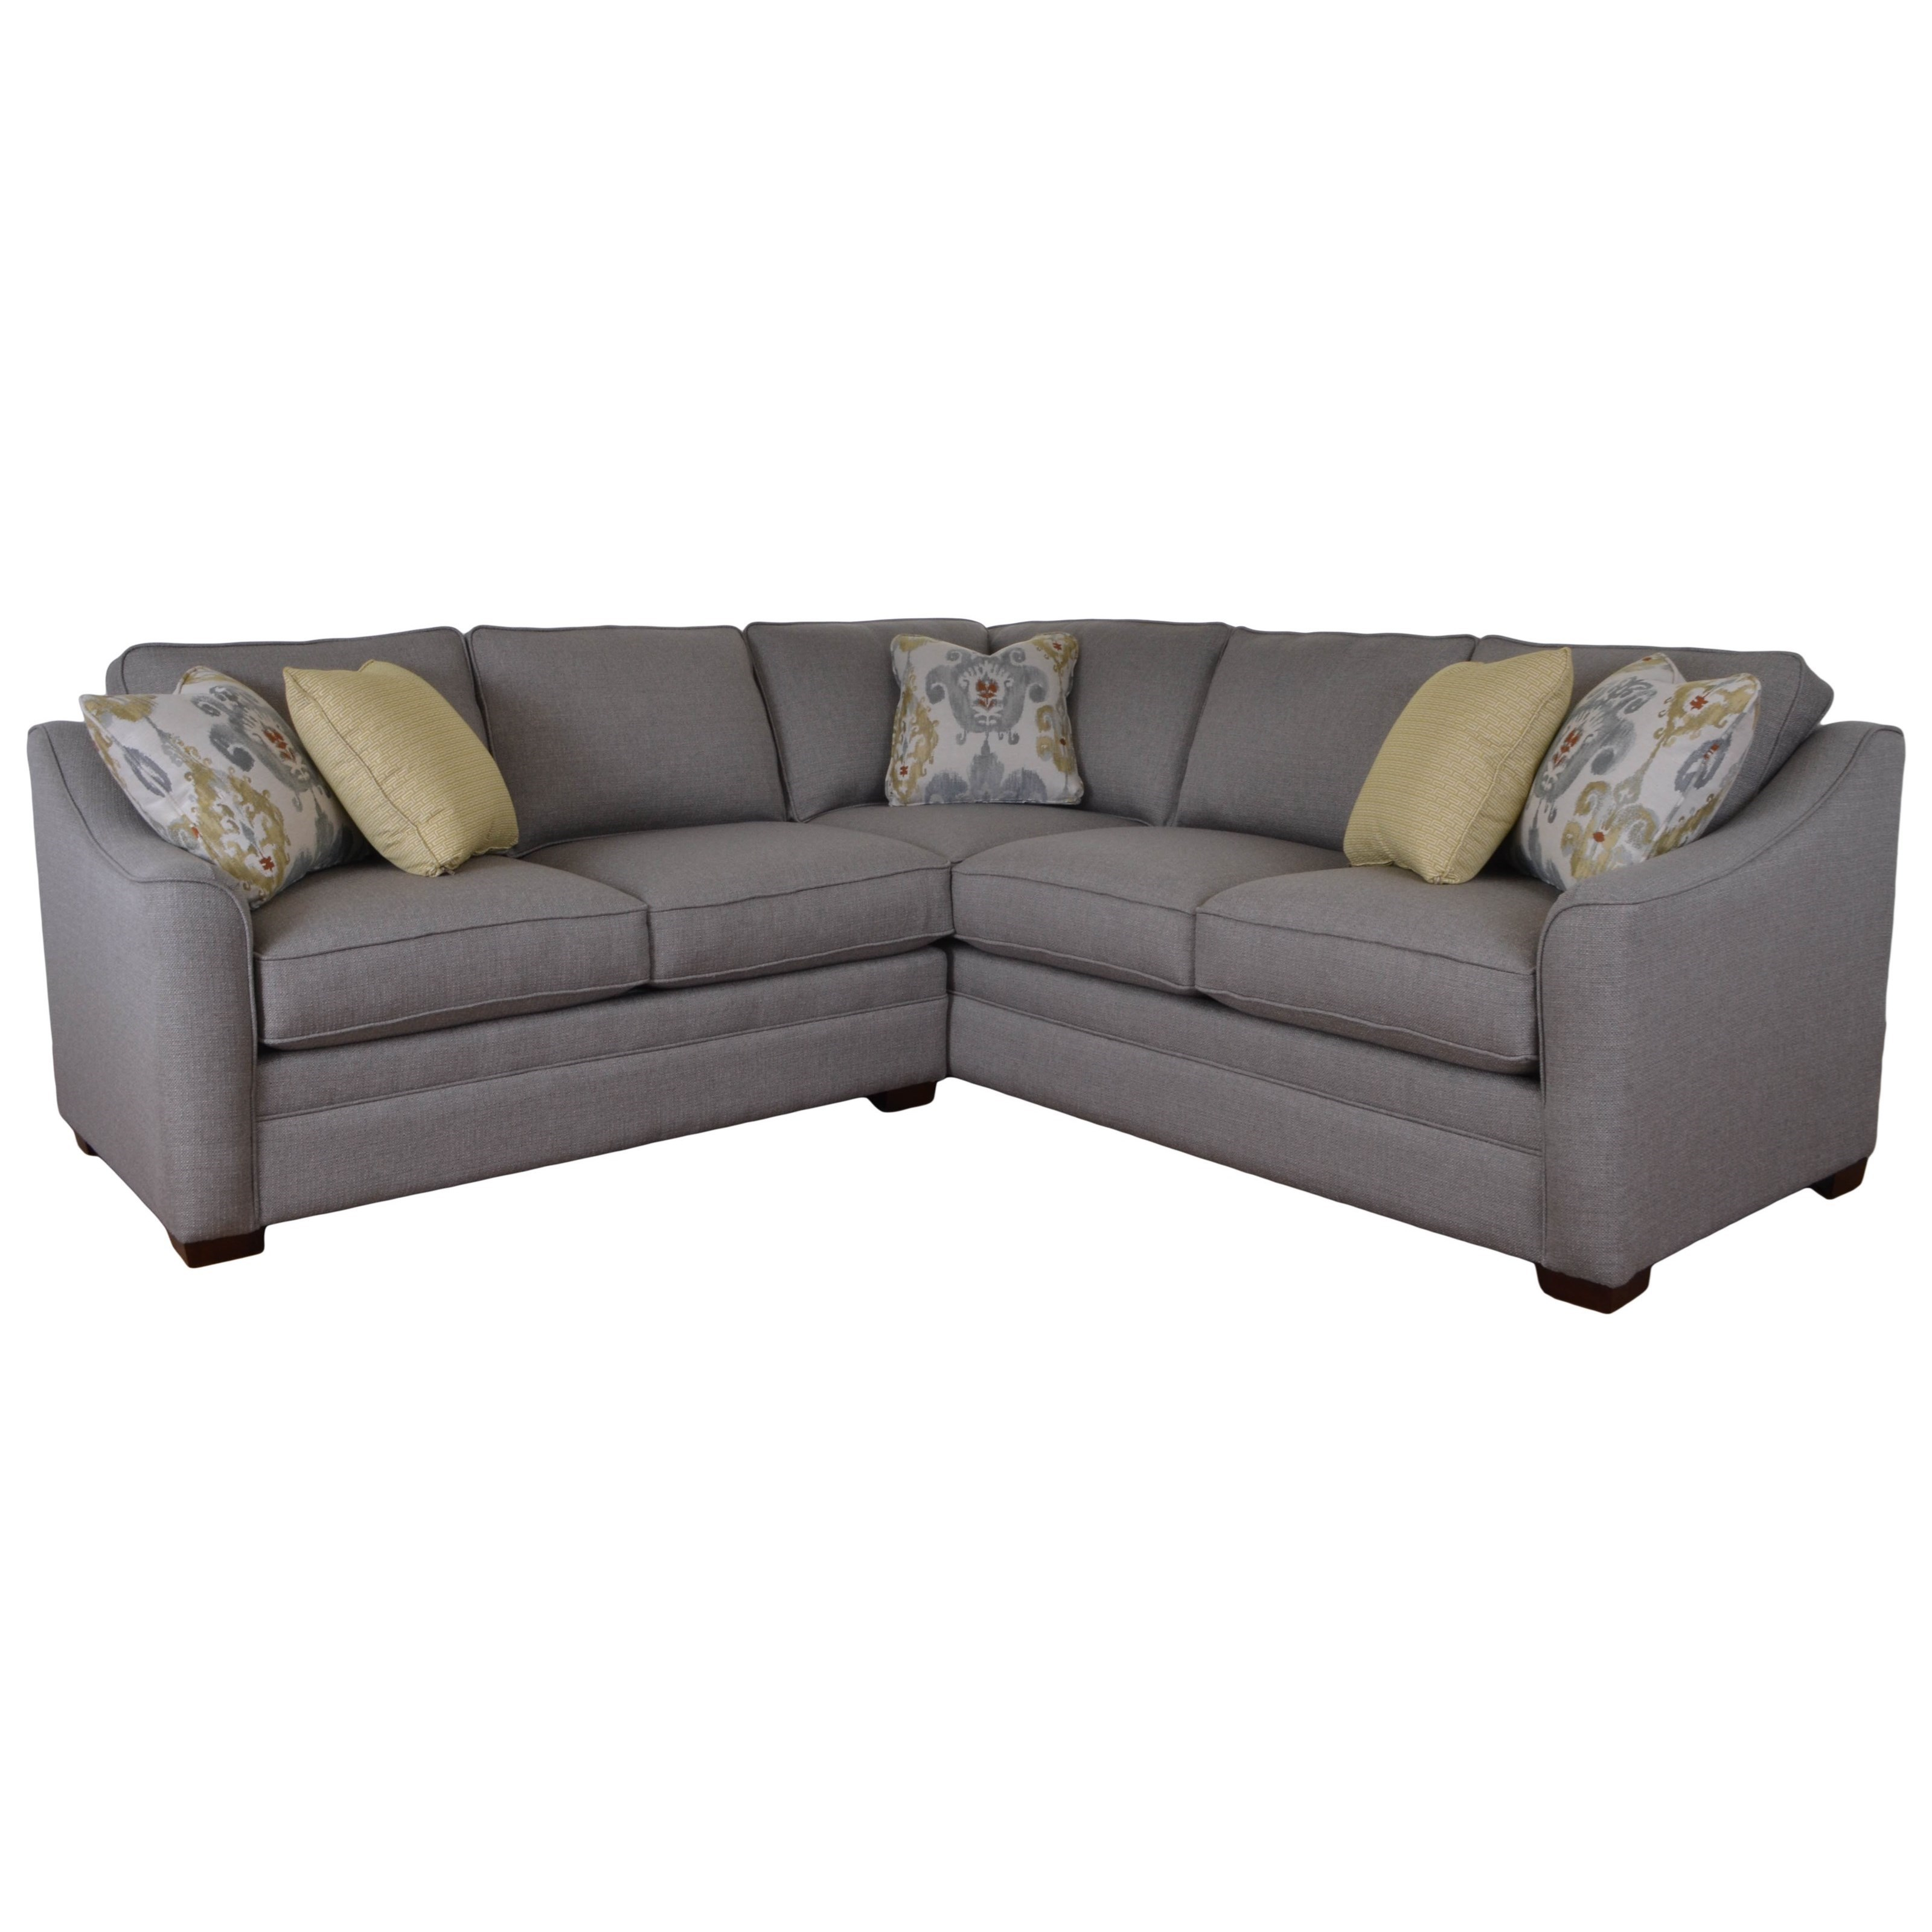 Craftmaster F9 Custom Collection Two Piece Customizable Corner Sectional Sofa with Left Return - Miskelly Furniture - Sectional Sofas  sc 1 st  Miskelly Furniture : craftmaster sectional - Sectionals, Sofas & Couches